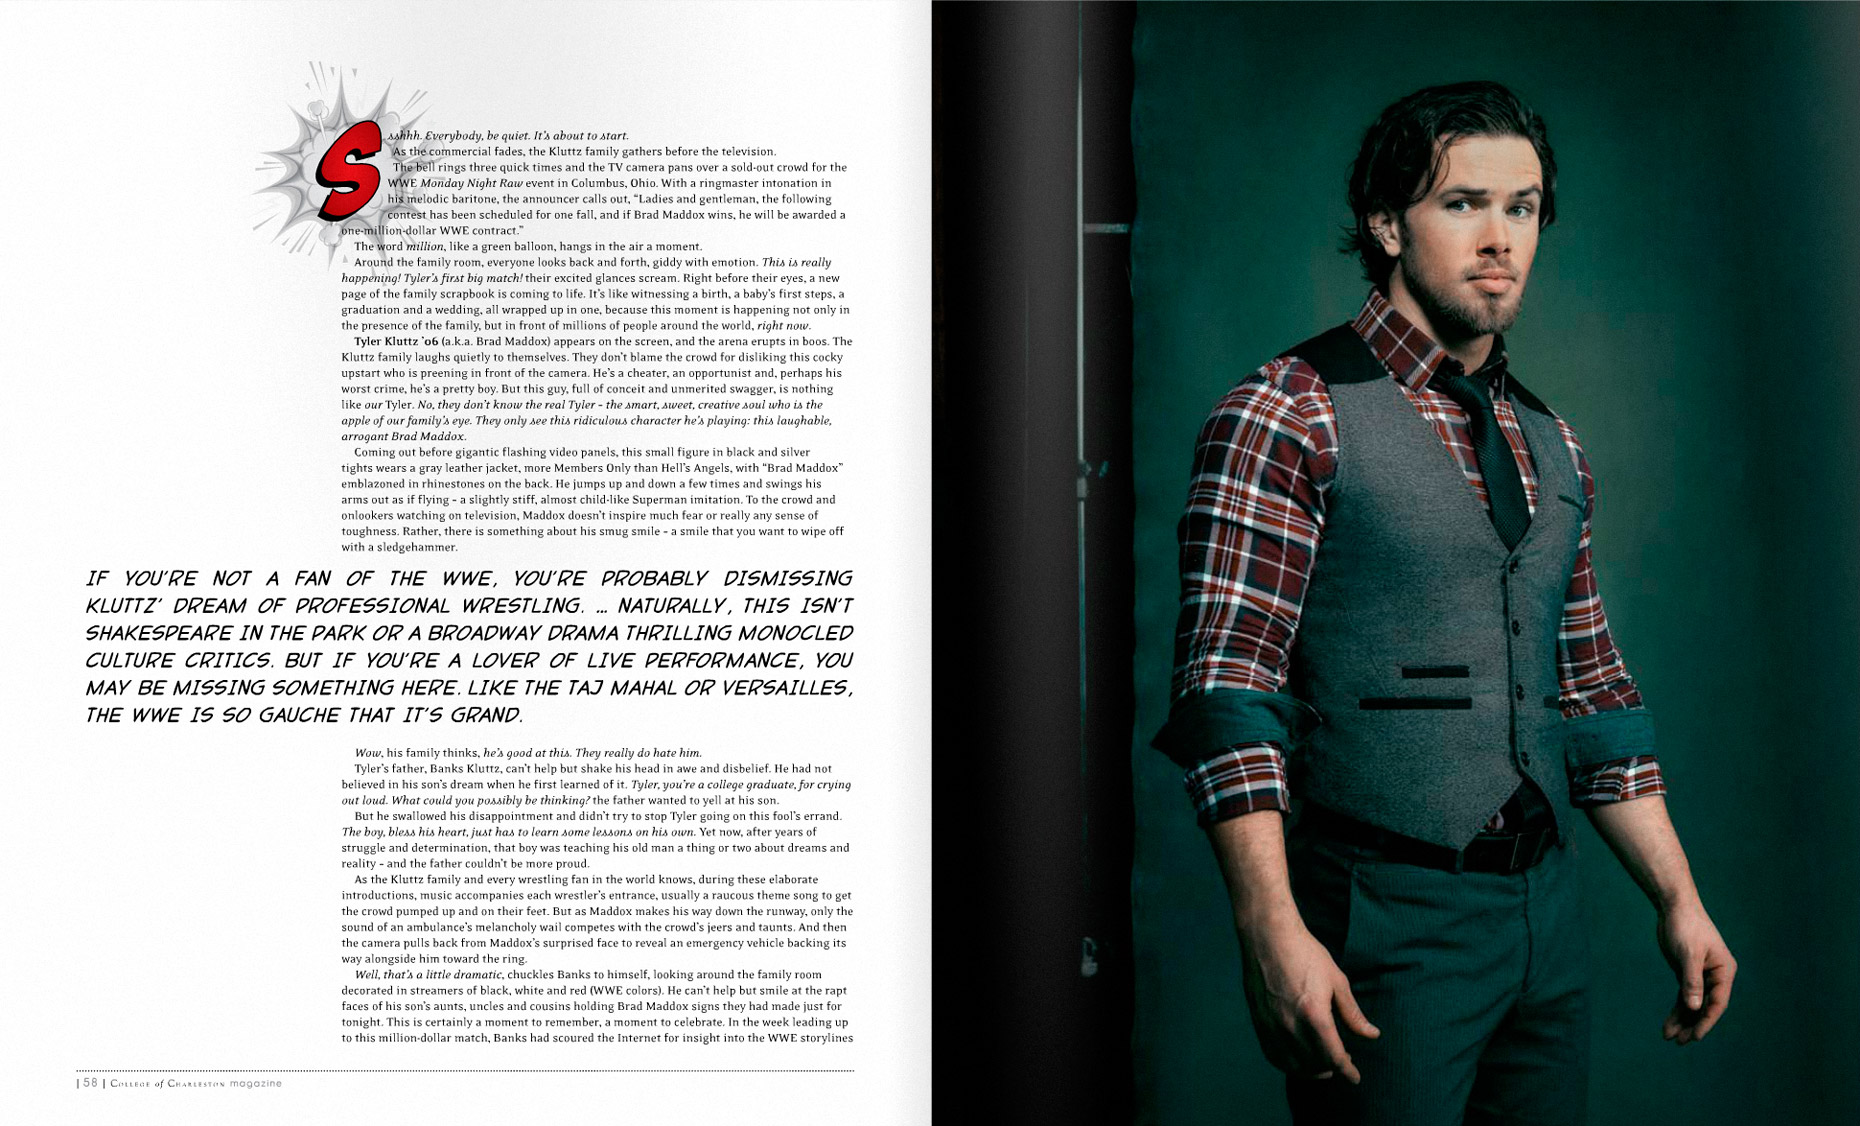 College Of Charleston Magazine - INTO THE RING - SPRING 2014 - Spread 1: Brad Maddox -  photographer Jason Myers